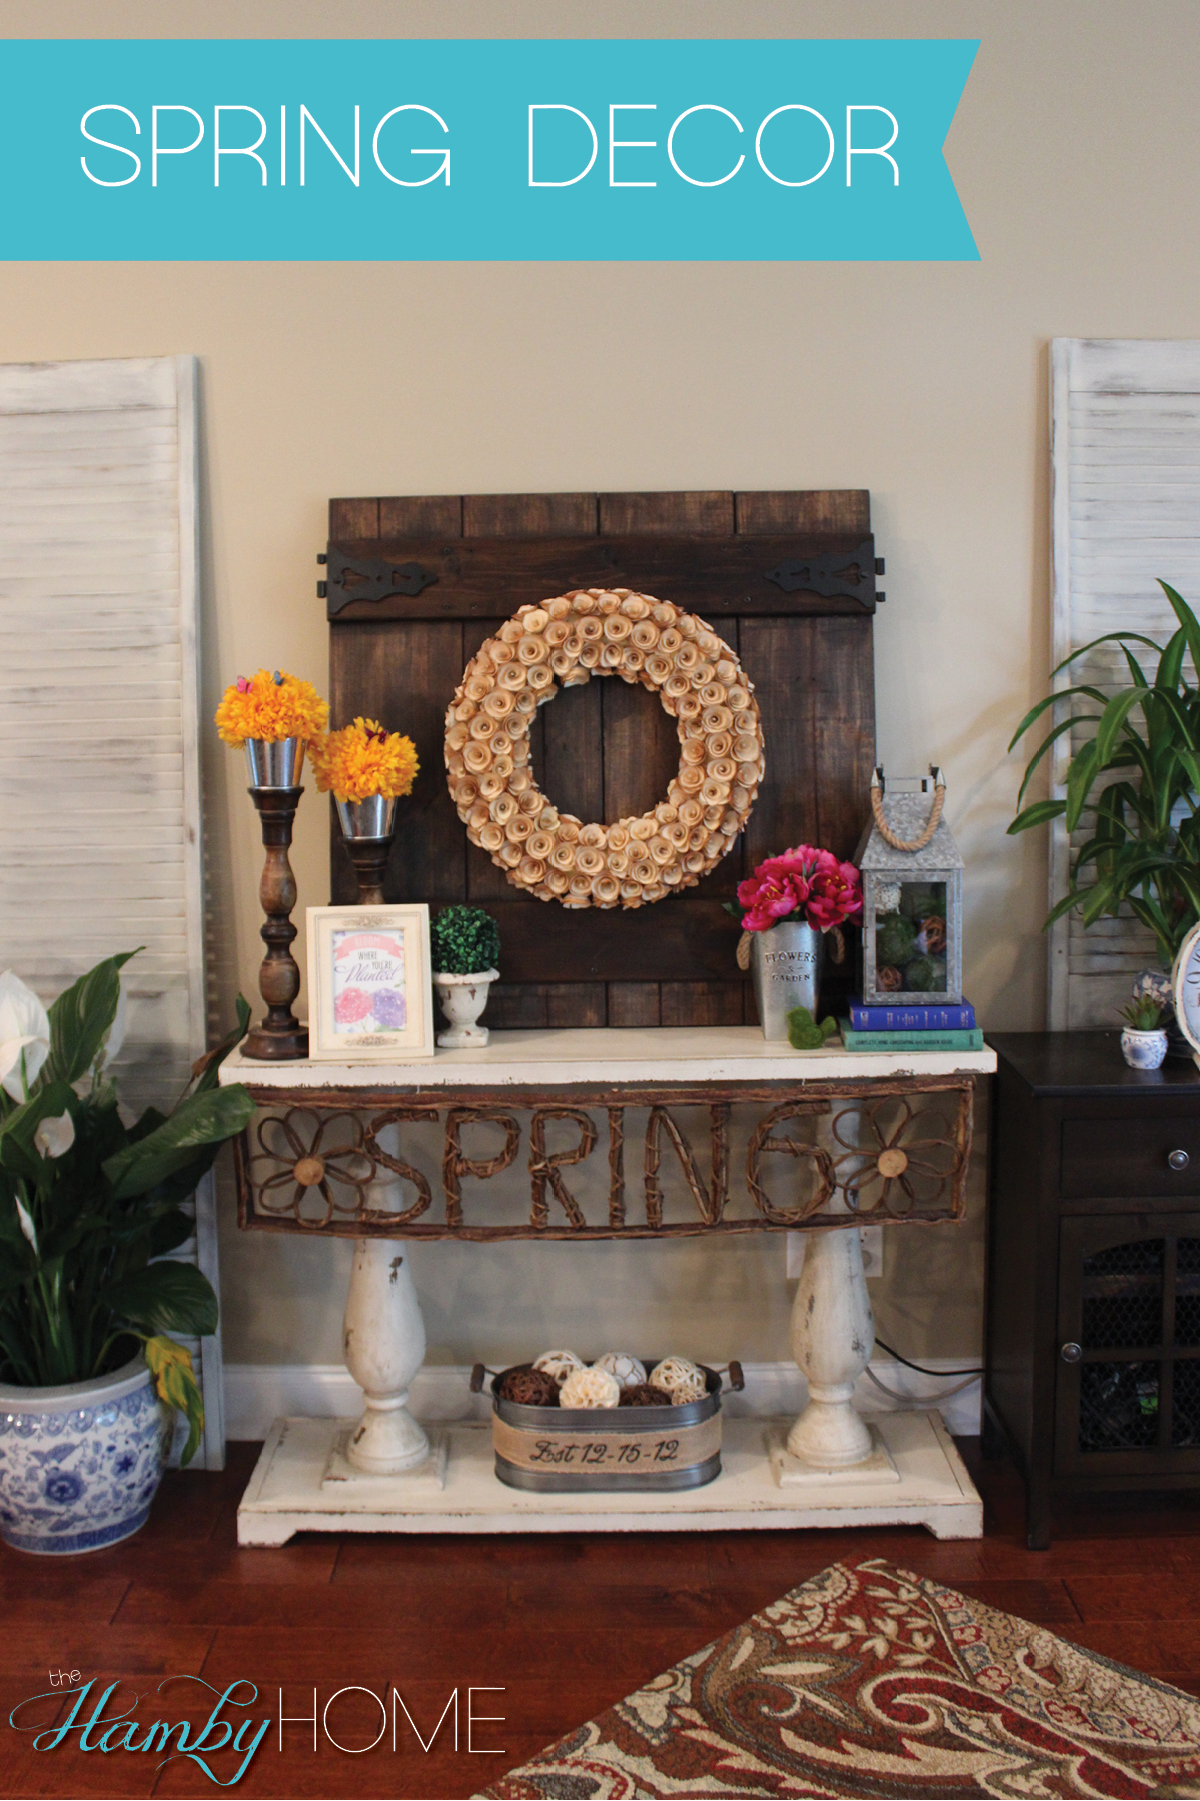 Spring Decor The Hamby Home